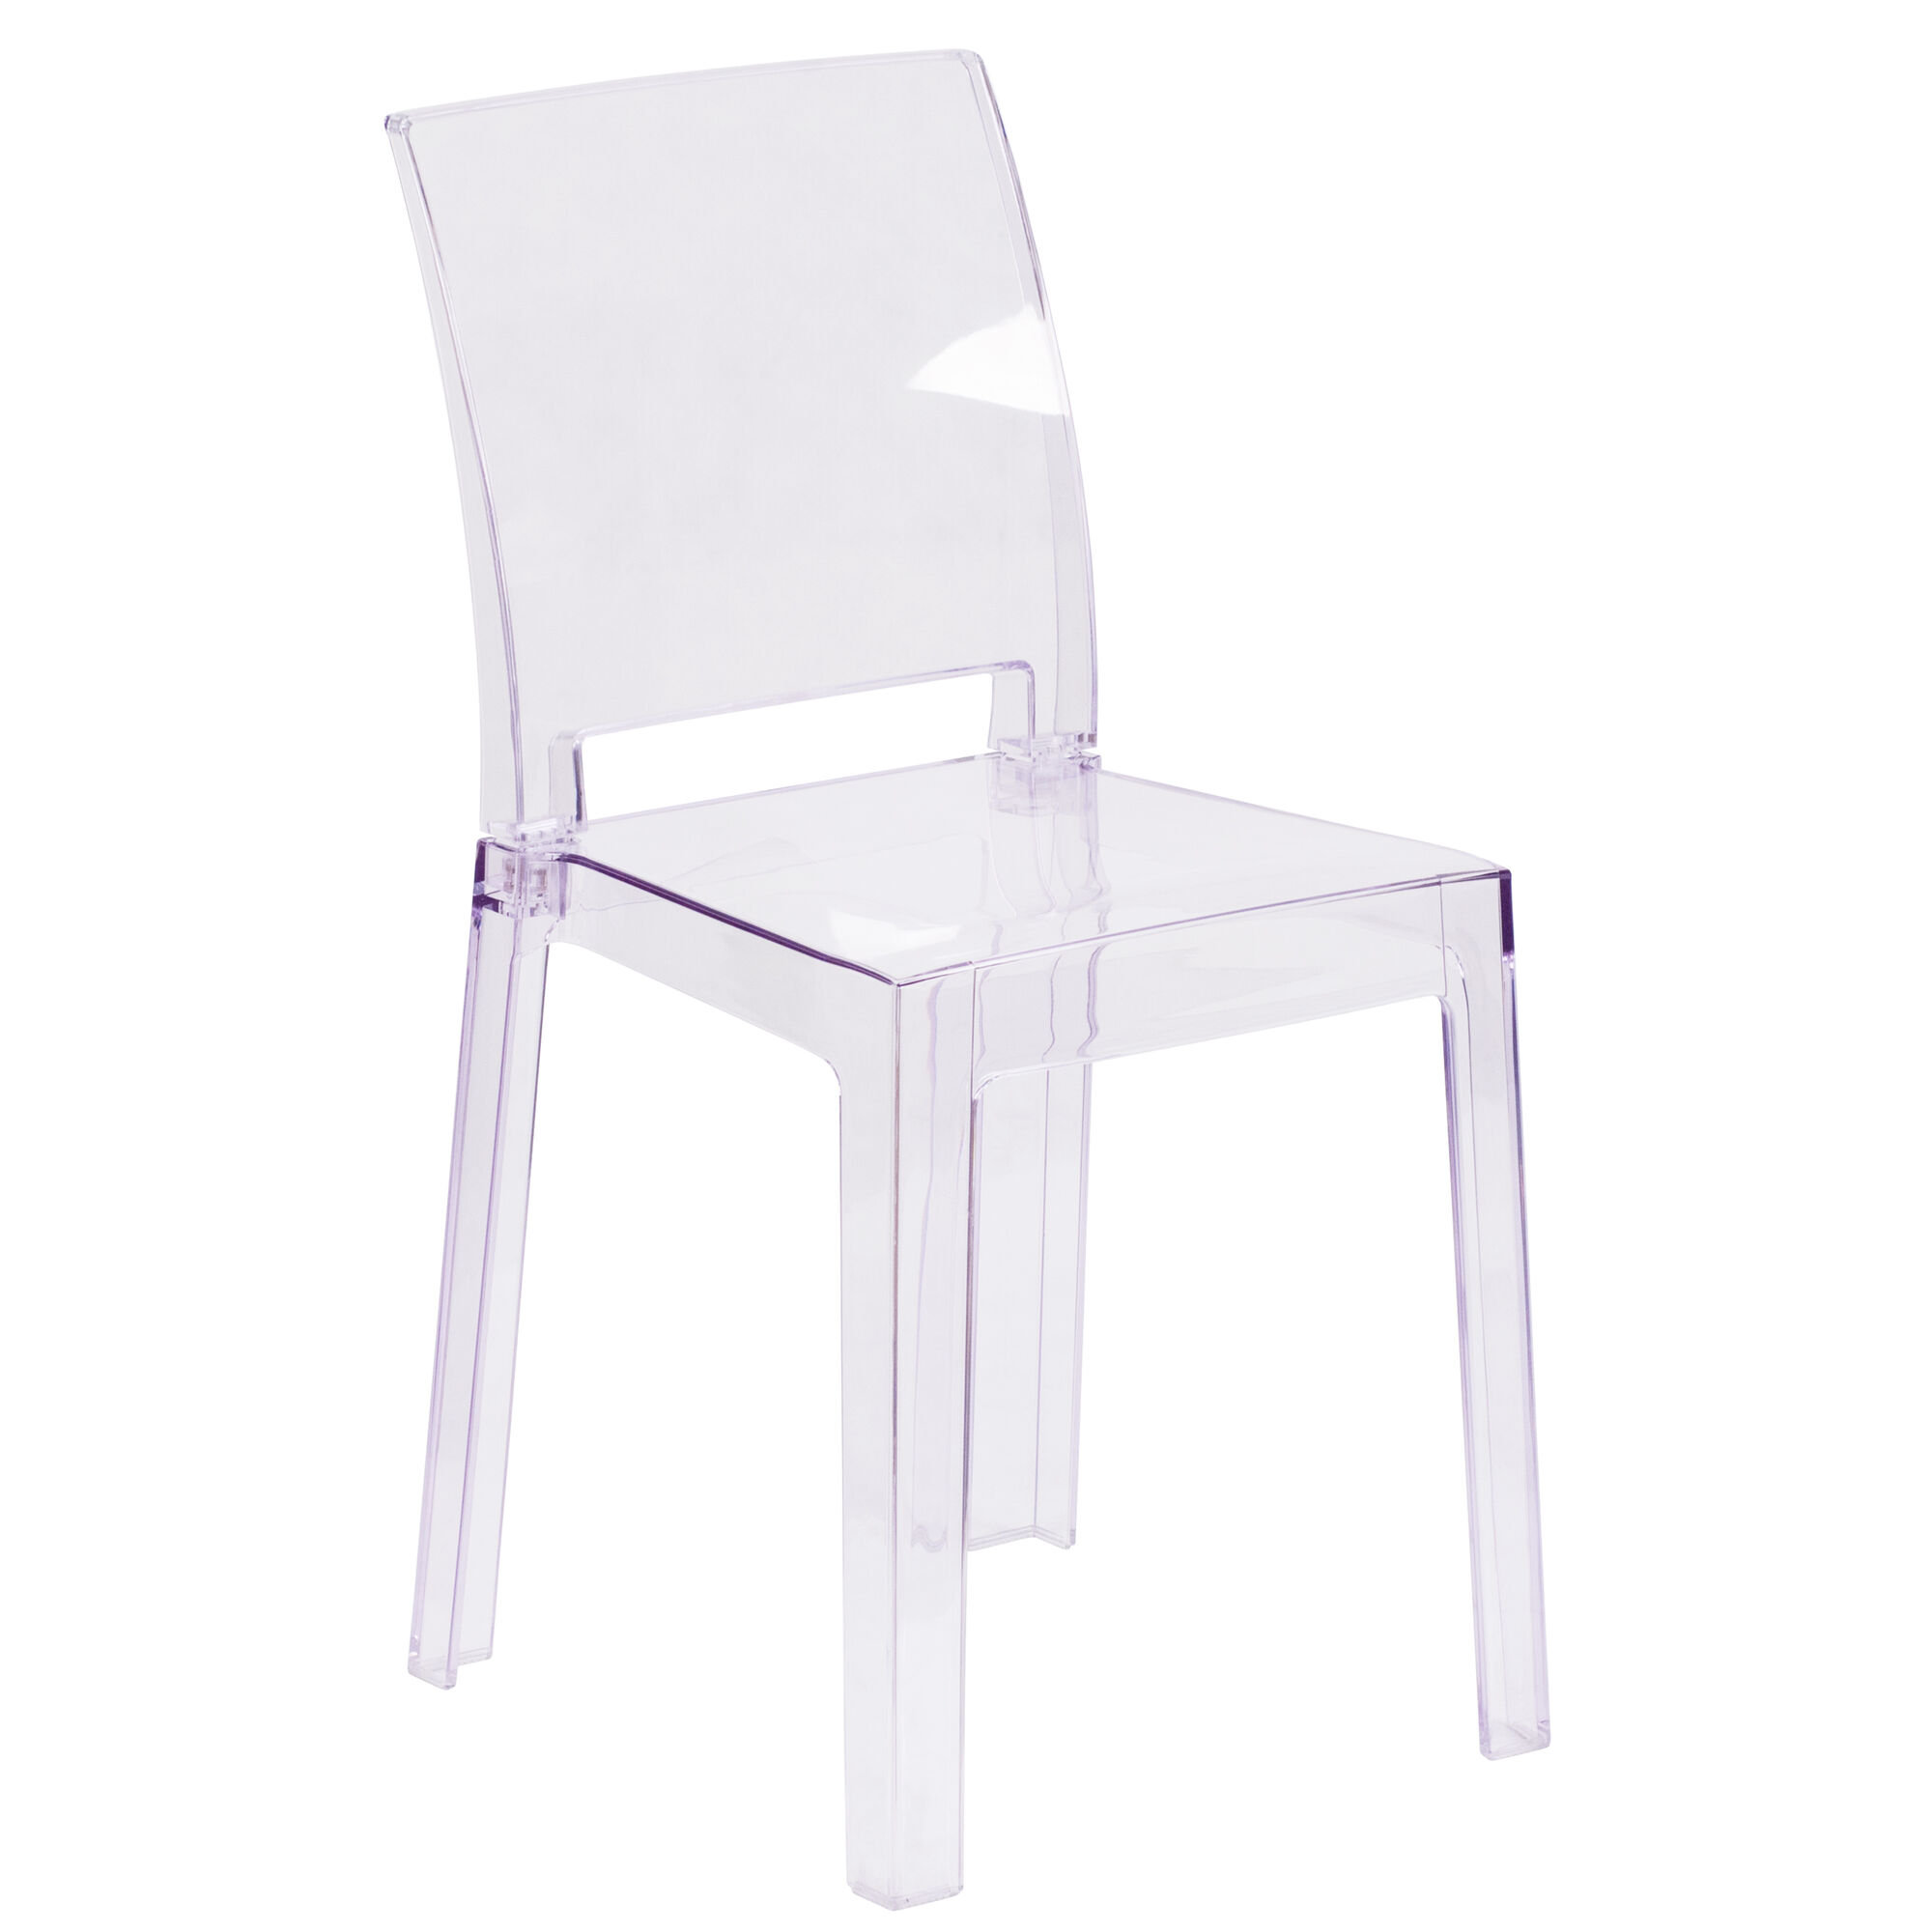 Restaurant Chairs Plastic And Resin at low bud prices